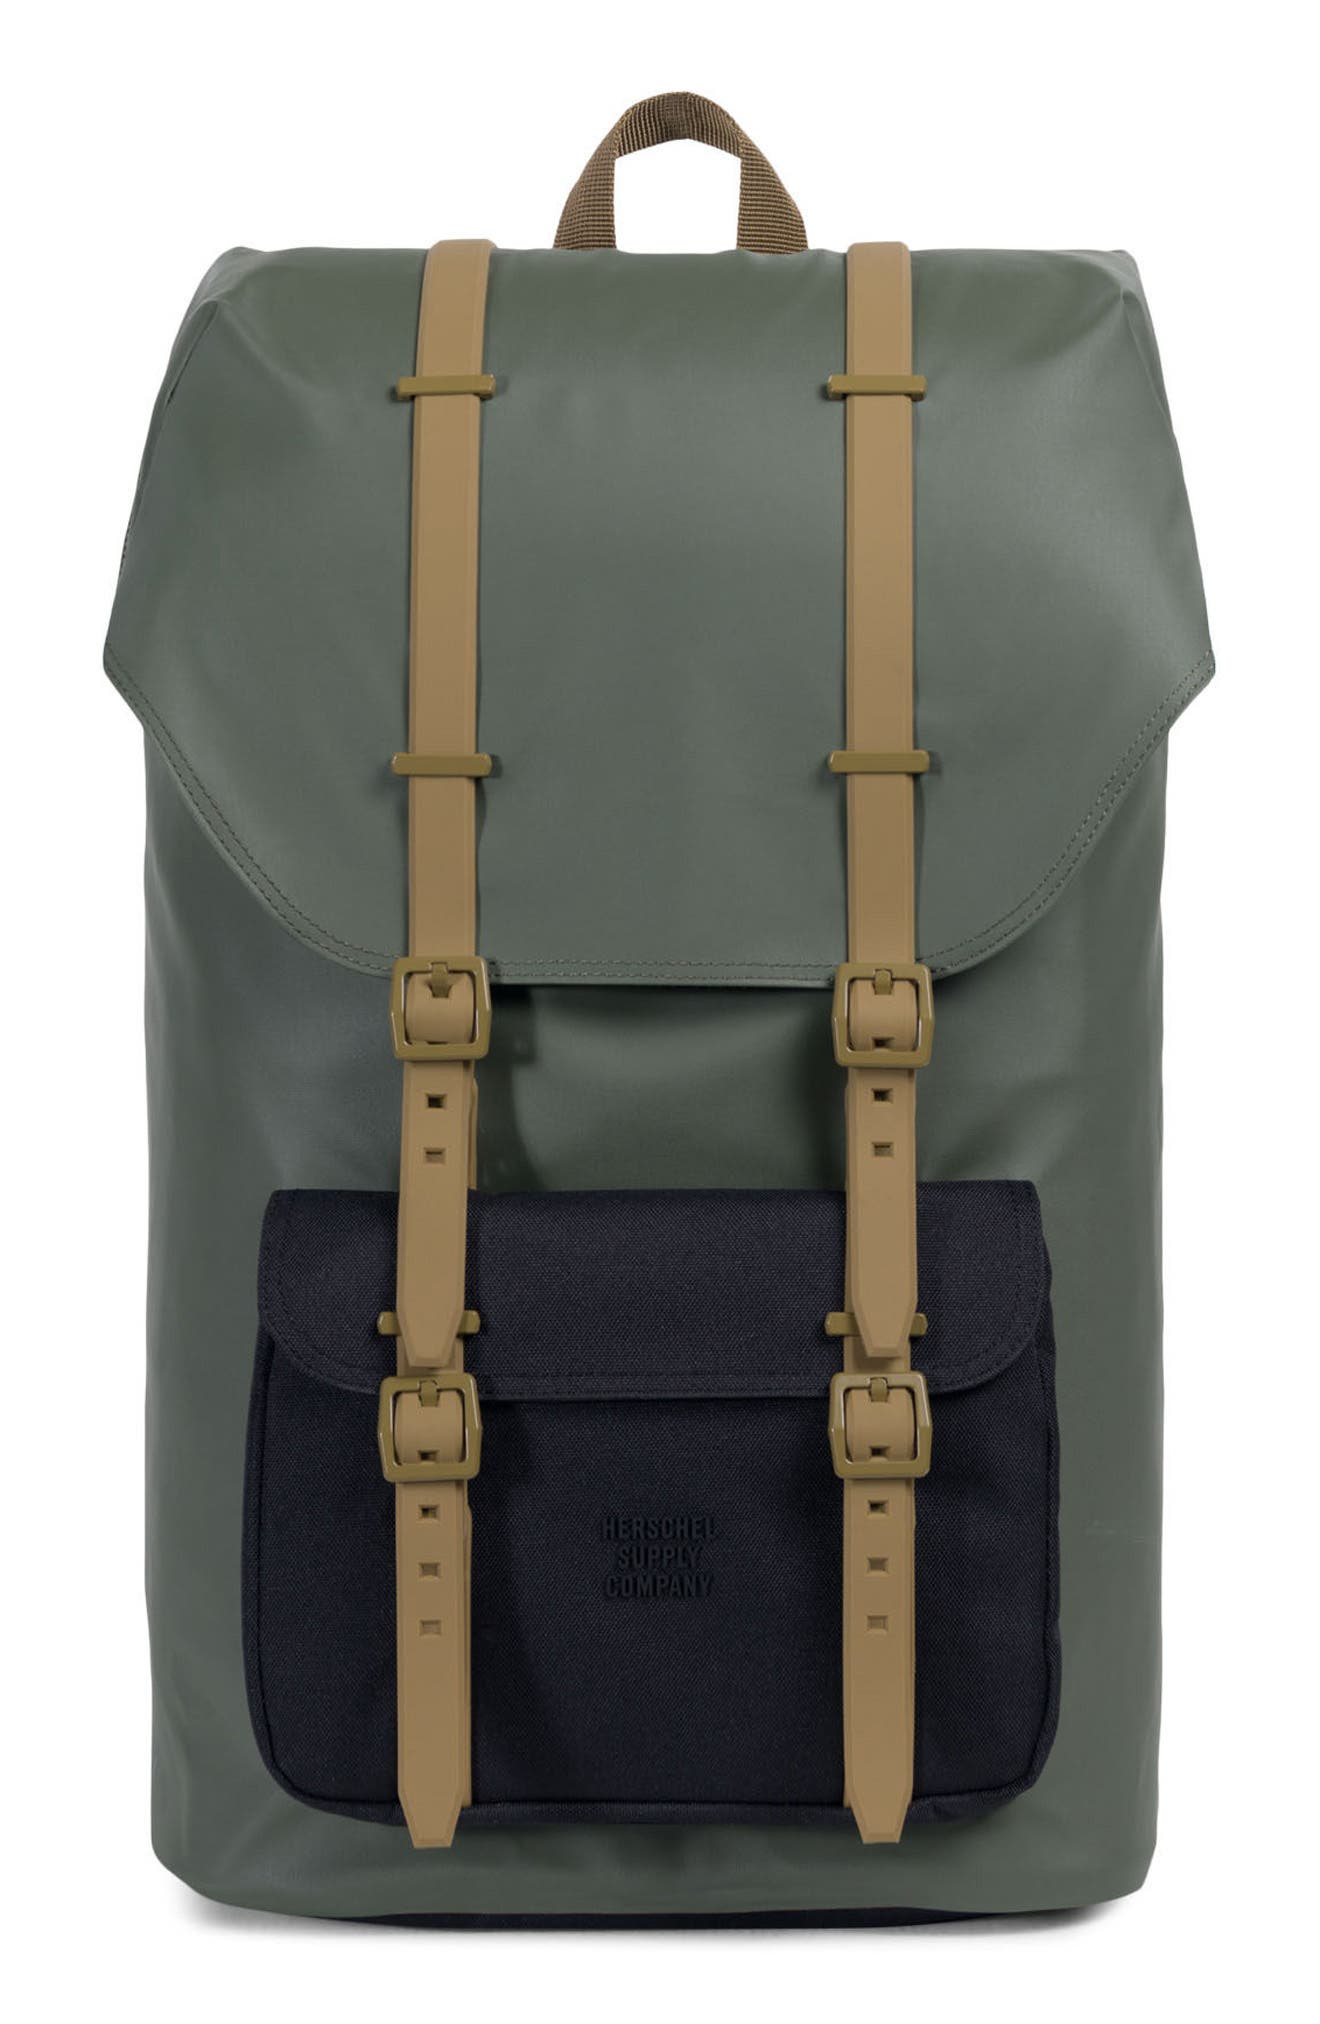 Little America Studio Collection Backpack,                             Main thumbnail 1, color,                             Beetle/ Black/ Gothic Olive